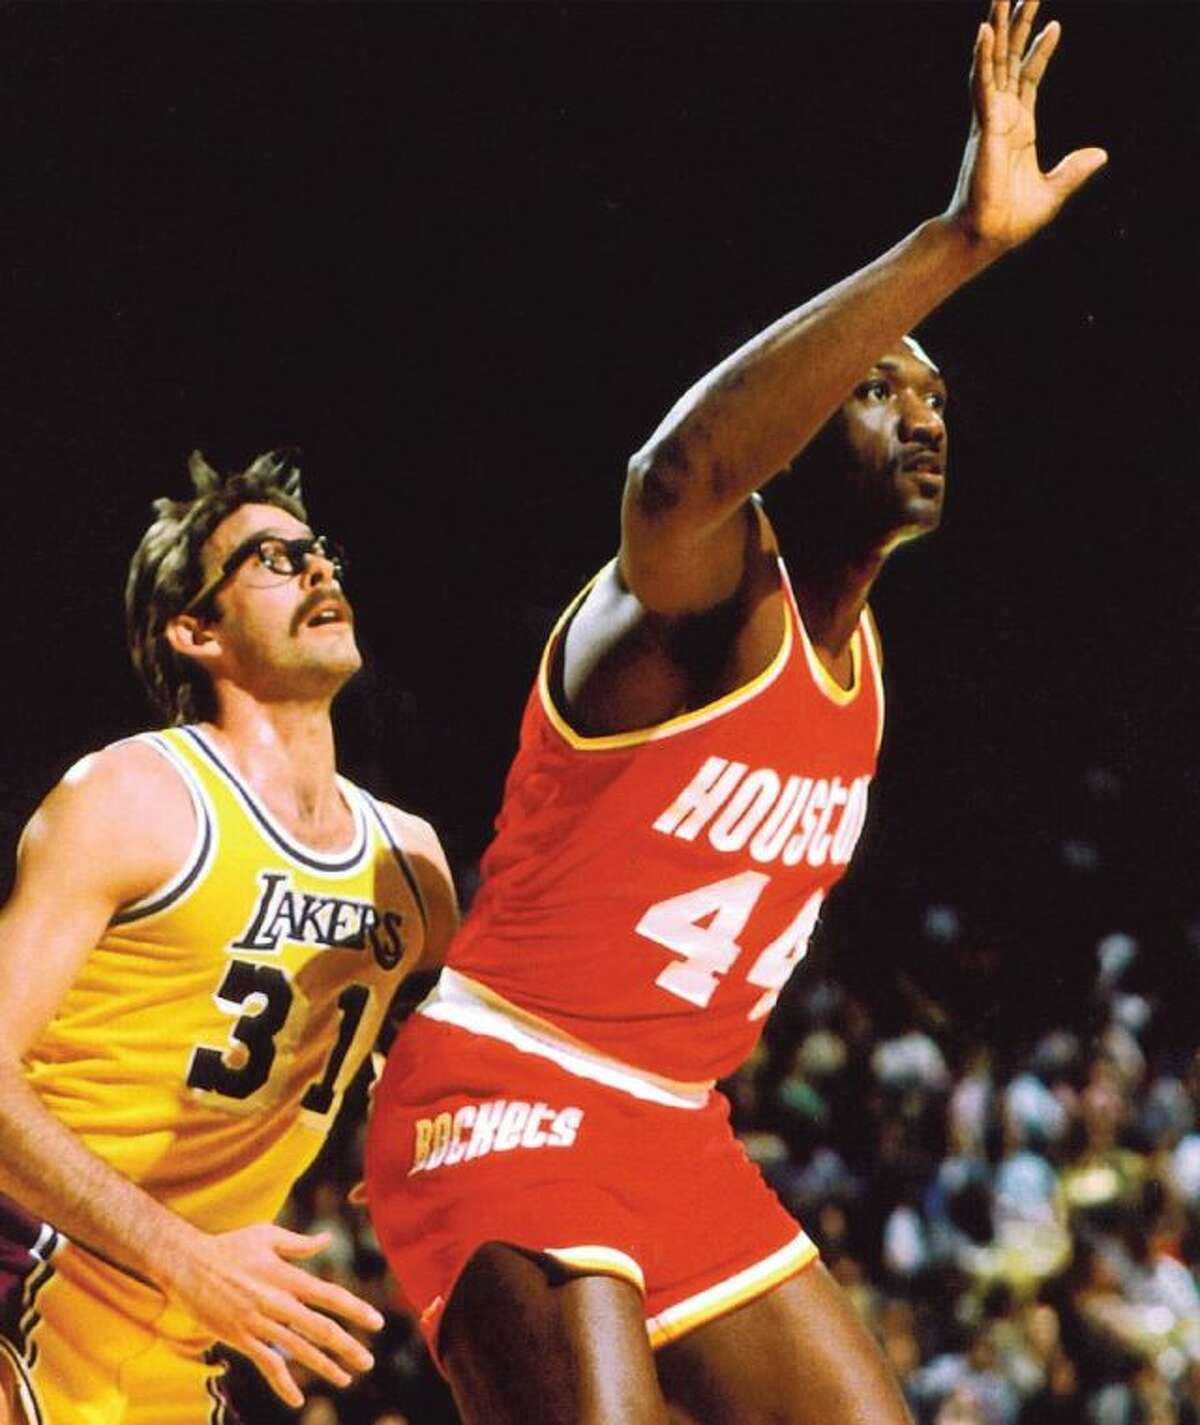 Elvin Hayes, former Houston Rocket, is being inducted into the National Collegiate Basketball Association's Hall of Fame in November. After his basketball career, Hayes' business ventures included owning car dealerships, including one in Liberty. He also was a reserve deputy for Liberty County Sheriff's Office from 2007 to 2012.